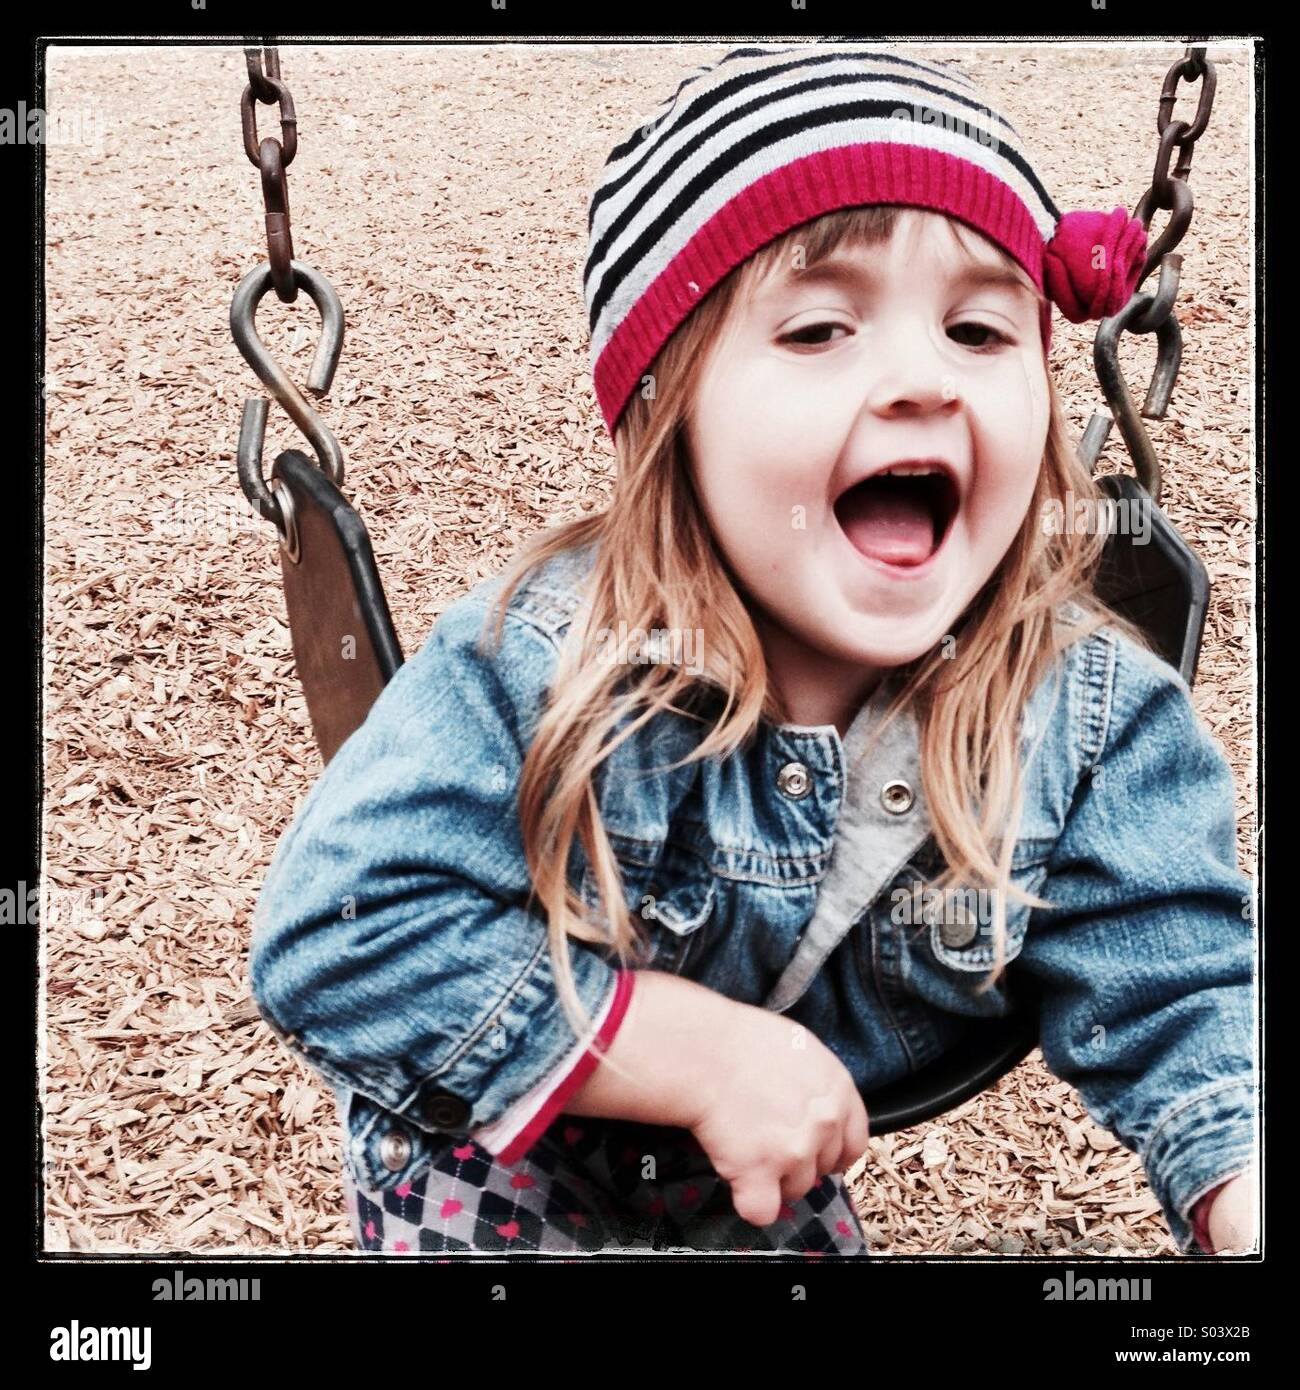 Toddler Caucasian girl having fun on a swing - Stock Image